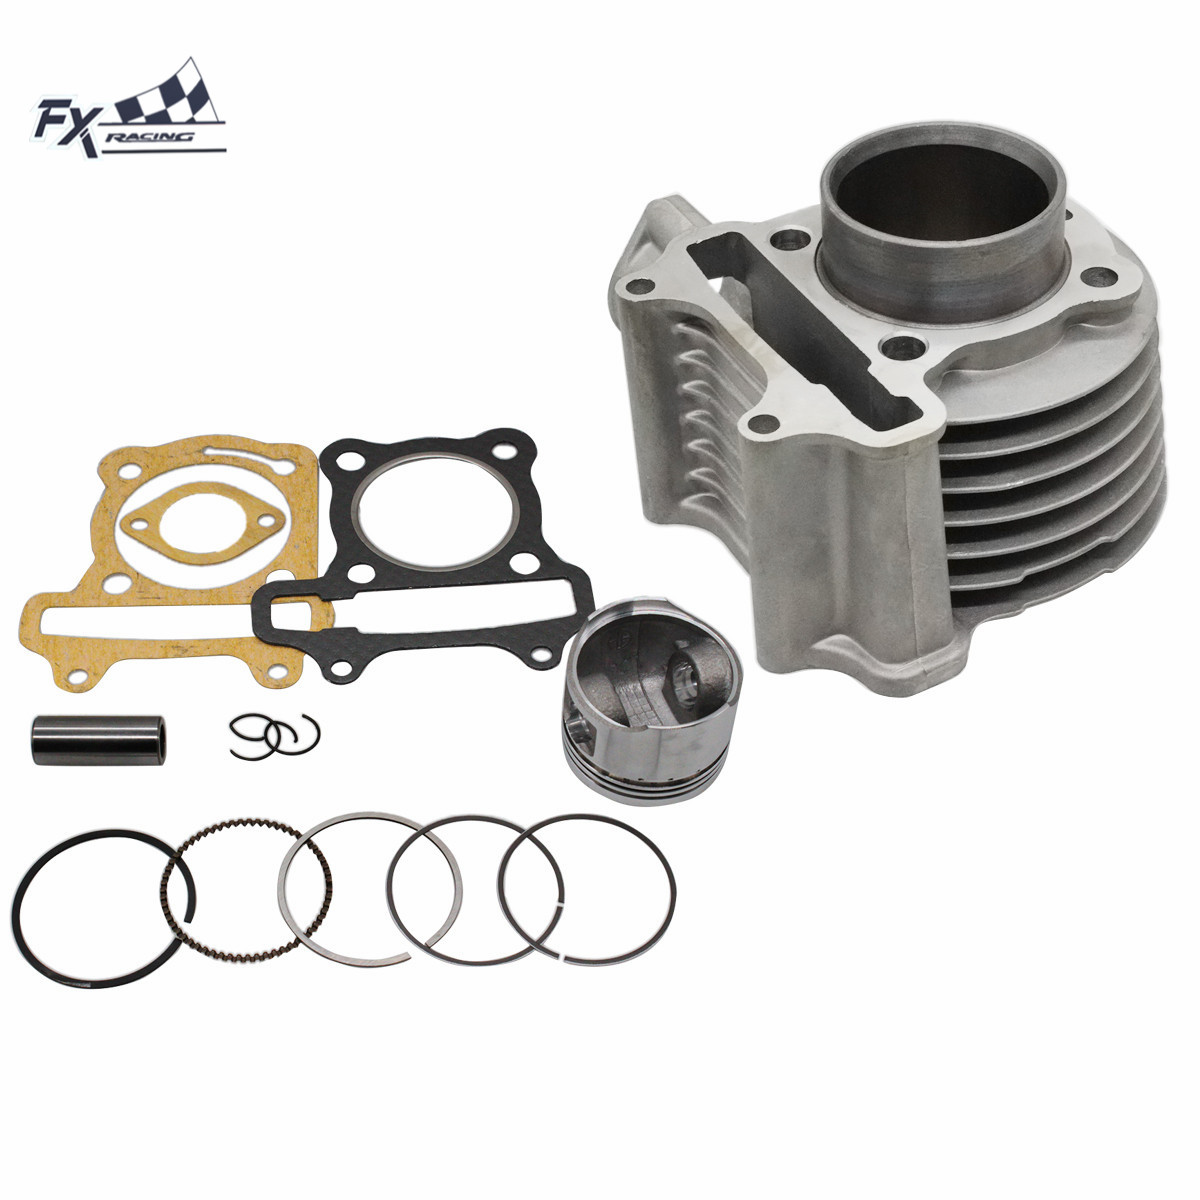 GY6 125cc 150cc 4 Stroke <font><b>52mm</b></font> 57mm Big Bore Cylinder Kit <font><b>Piston</b></font> <font><b>Ring</b></font> For Chinese Scooter ATV Moped 139QMB 139QMA Engine image